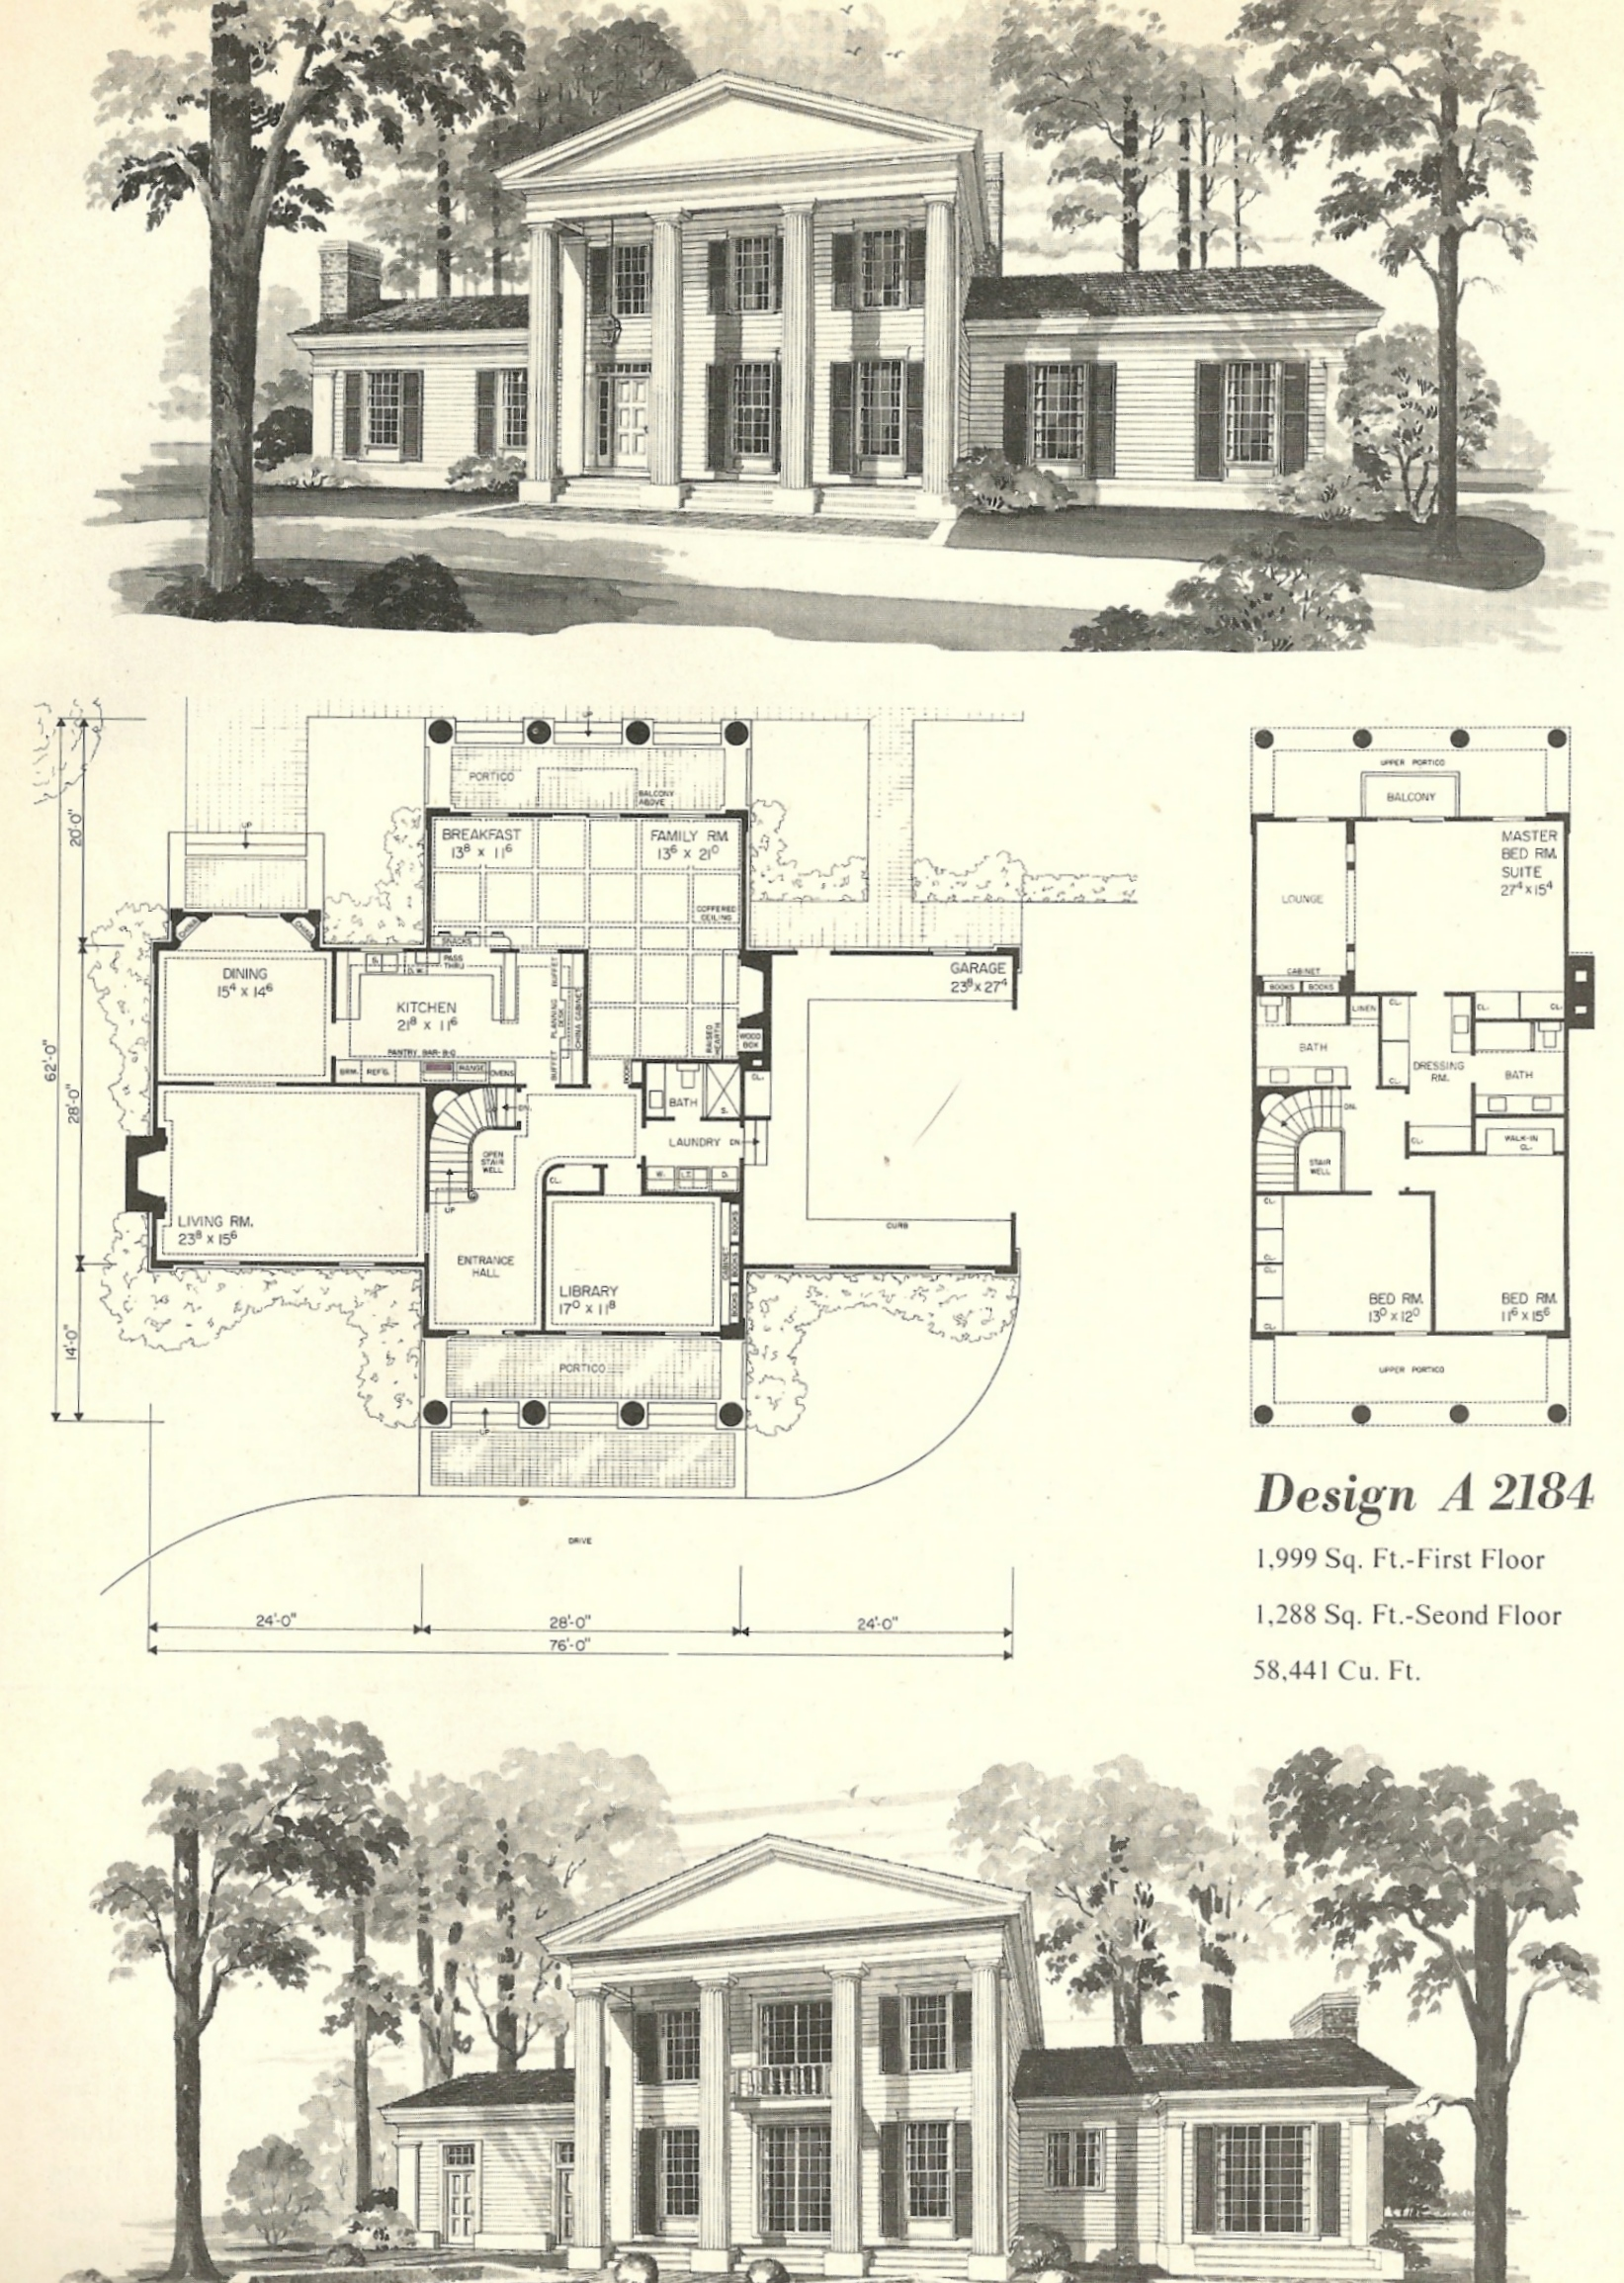 Vintage house plans 2184 antique alter ego for 1970s house floor plans